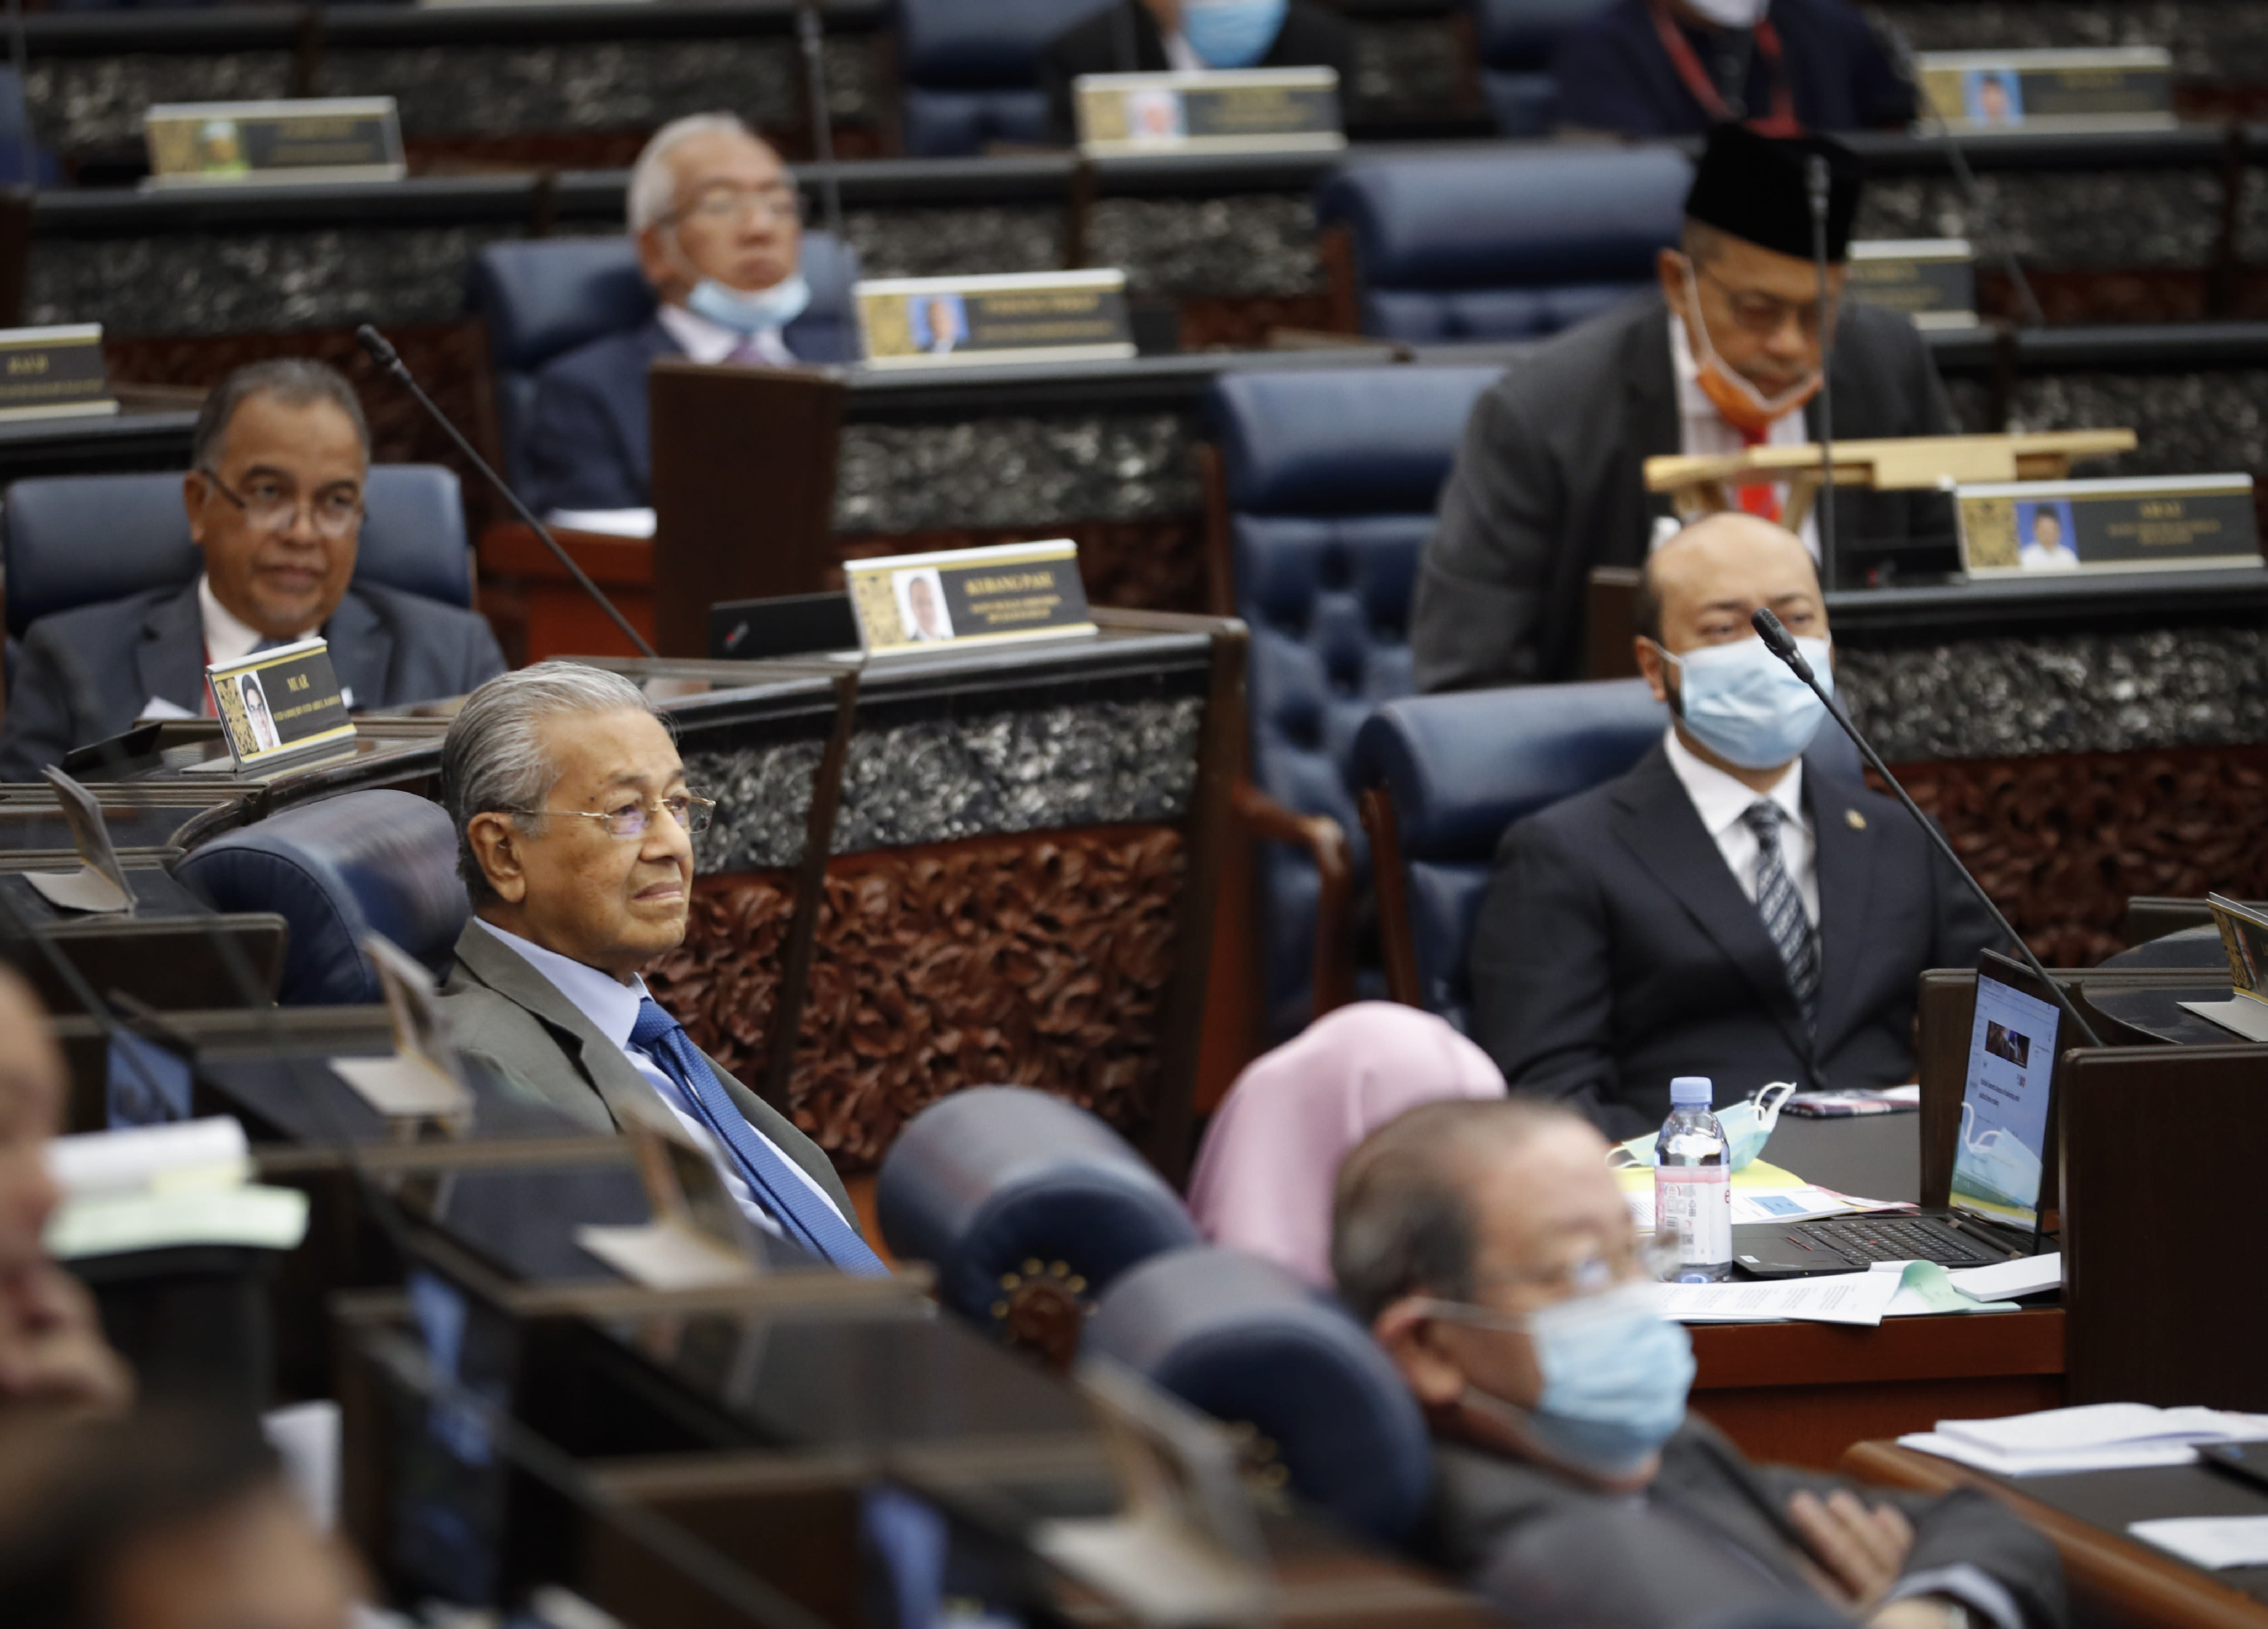 Former Prime Minister Mahathir Mohamad, left, attend a session of the lower house of parliament in Kuala Lumpur, Malaysia, Monday, July 13, 2020. (AP Photo/Vincent Thian)